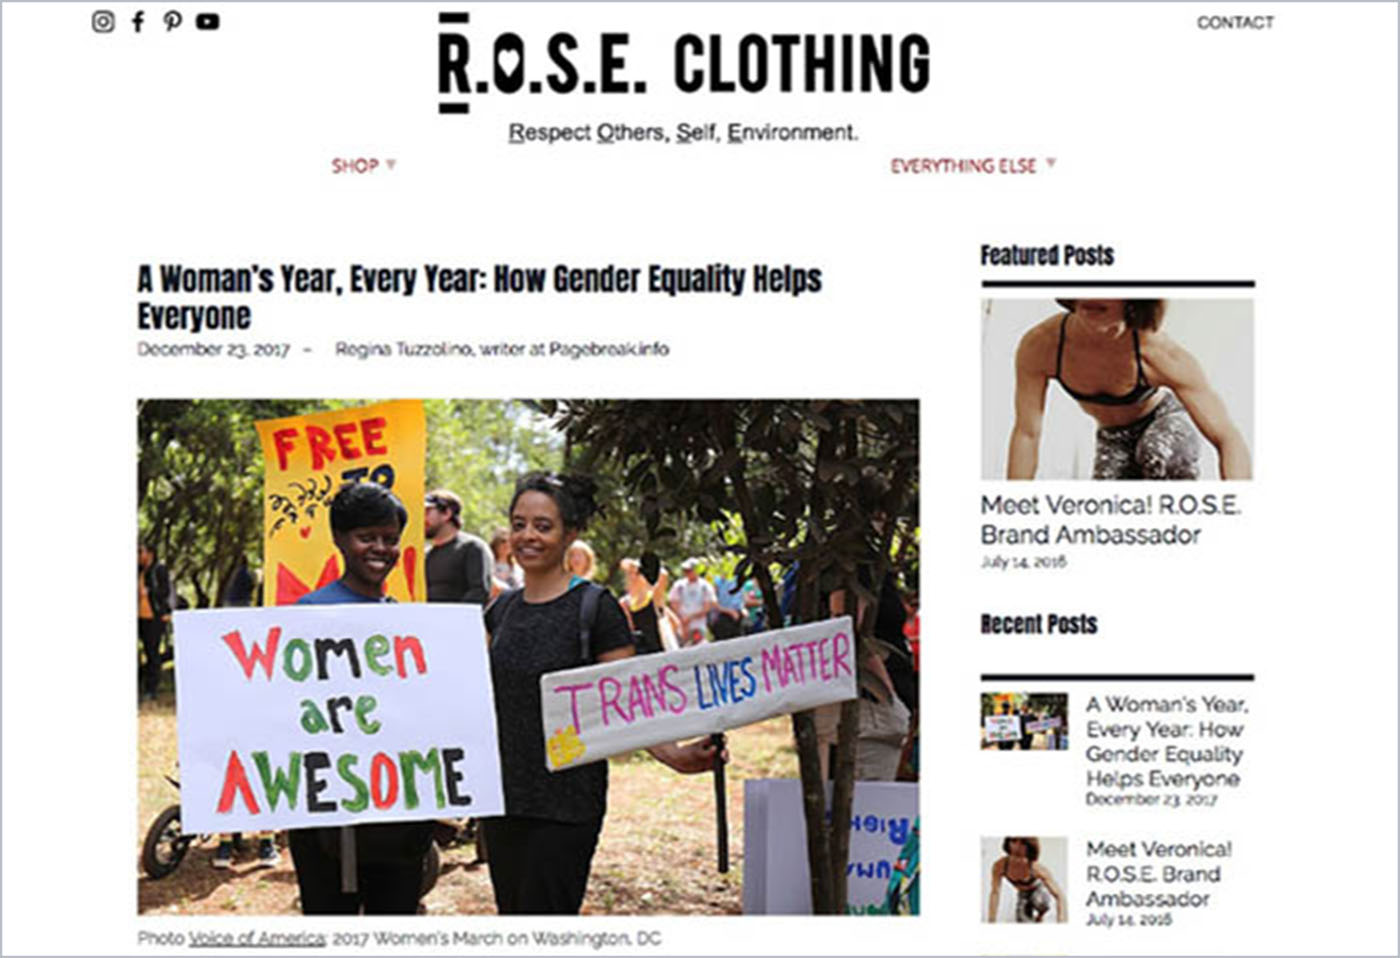 Blog from R.O.S.E. Clothing